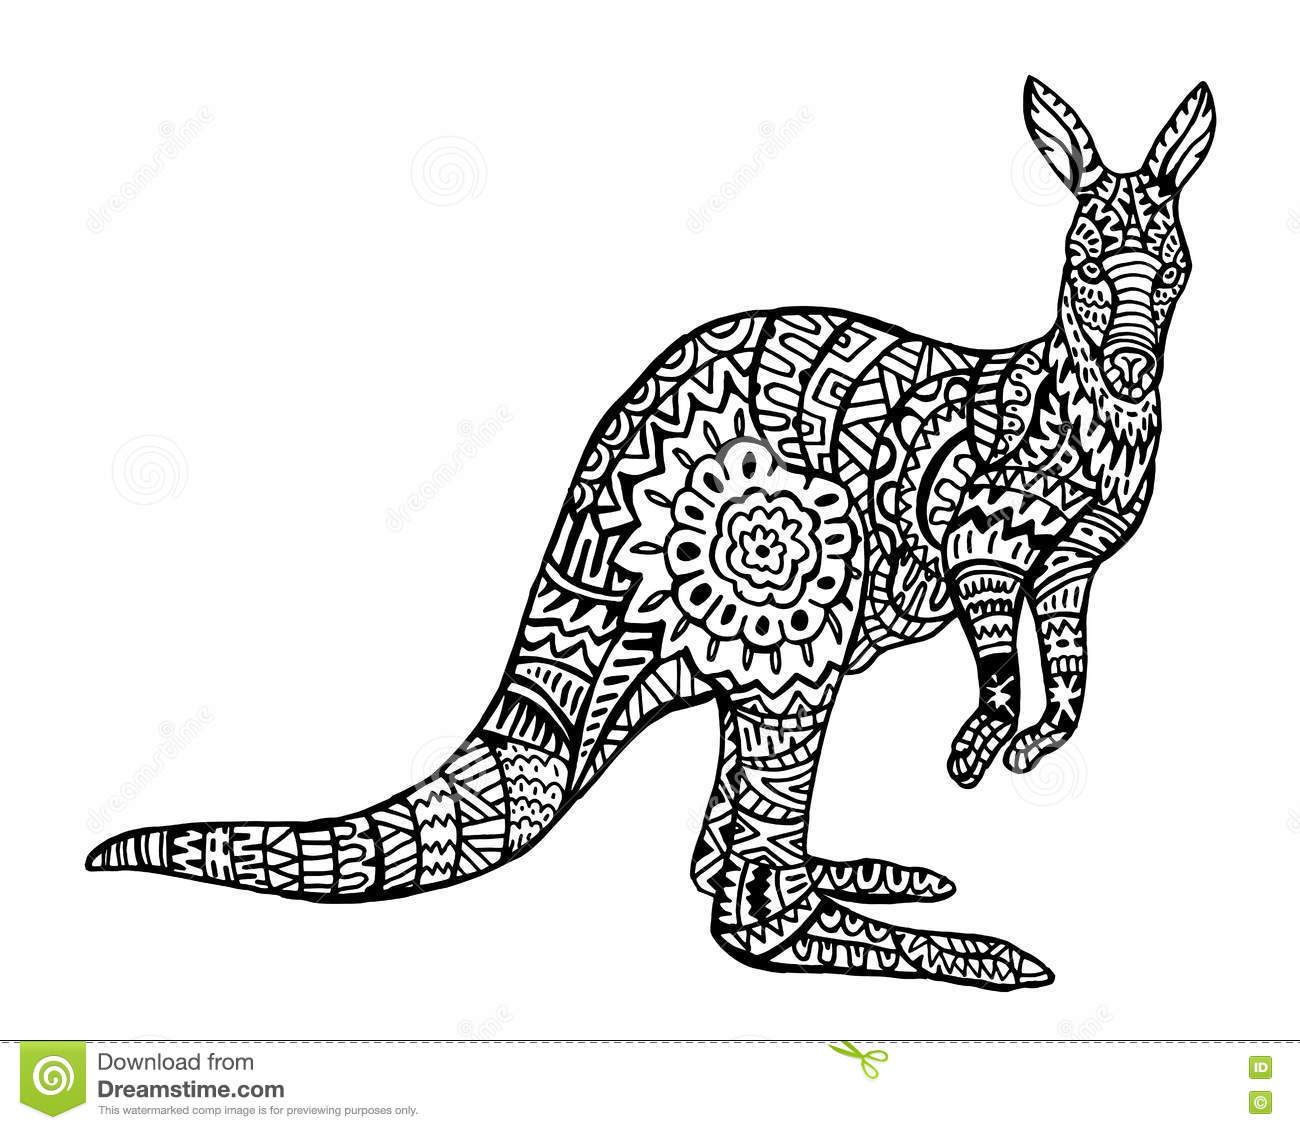 Royalty Free Vector Download Ethnic Animal Doodle